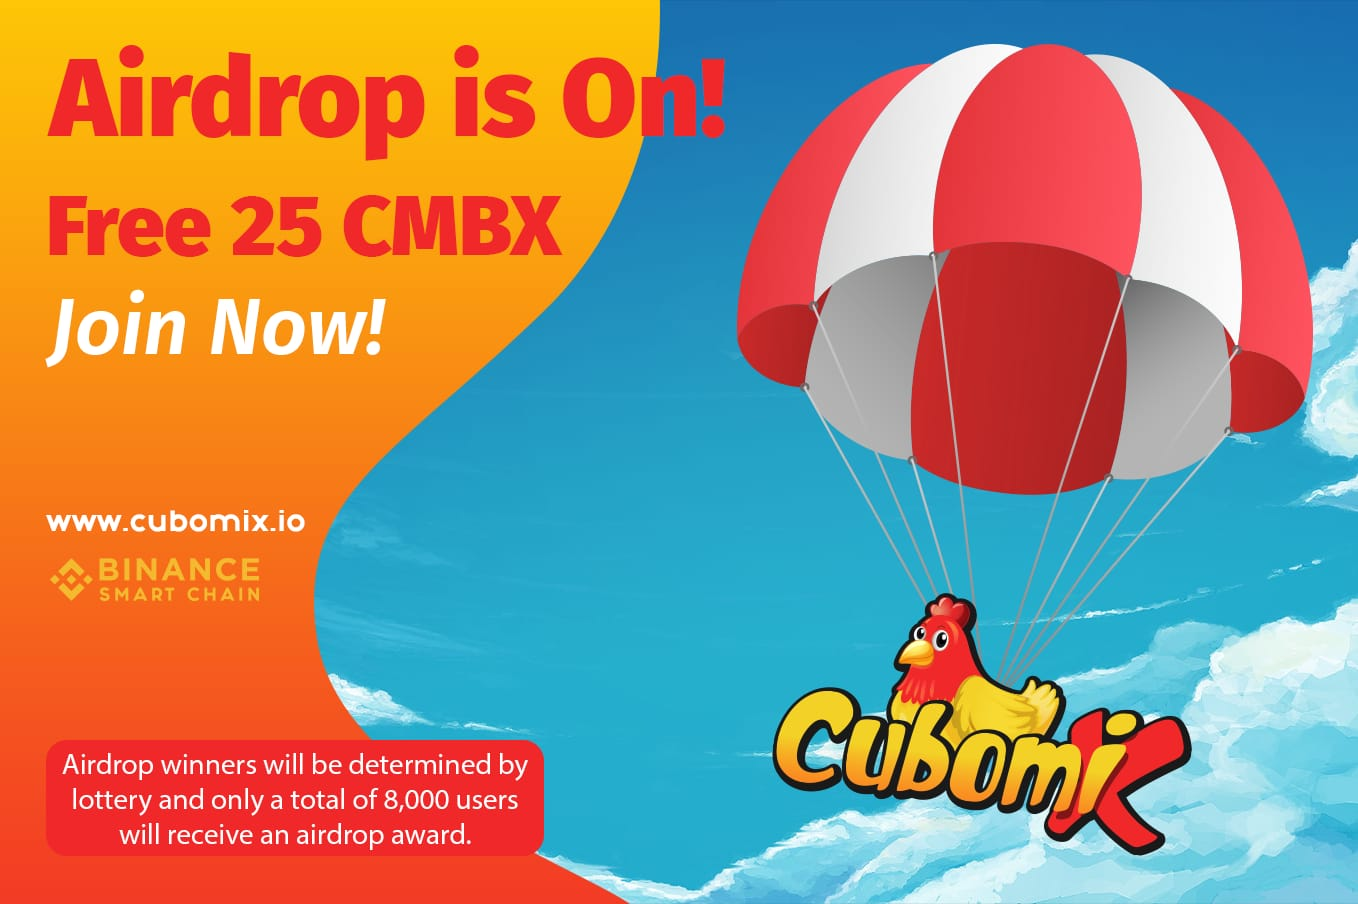 Join Cubomix Airdrop